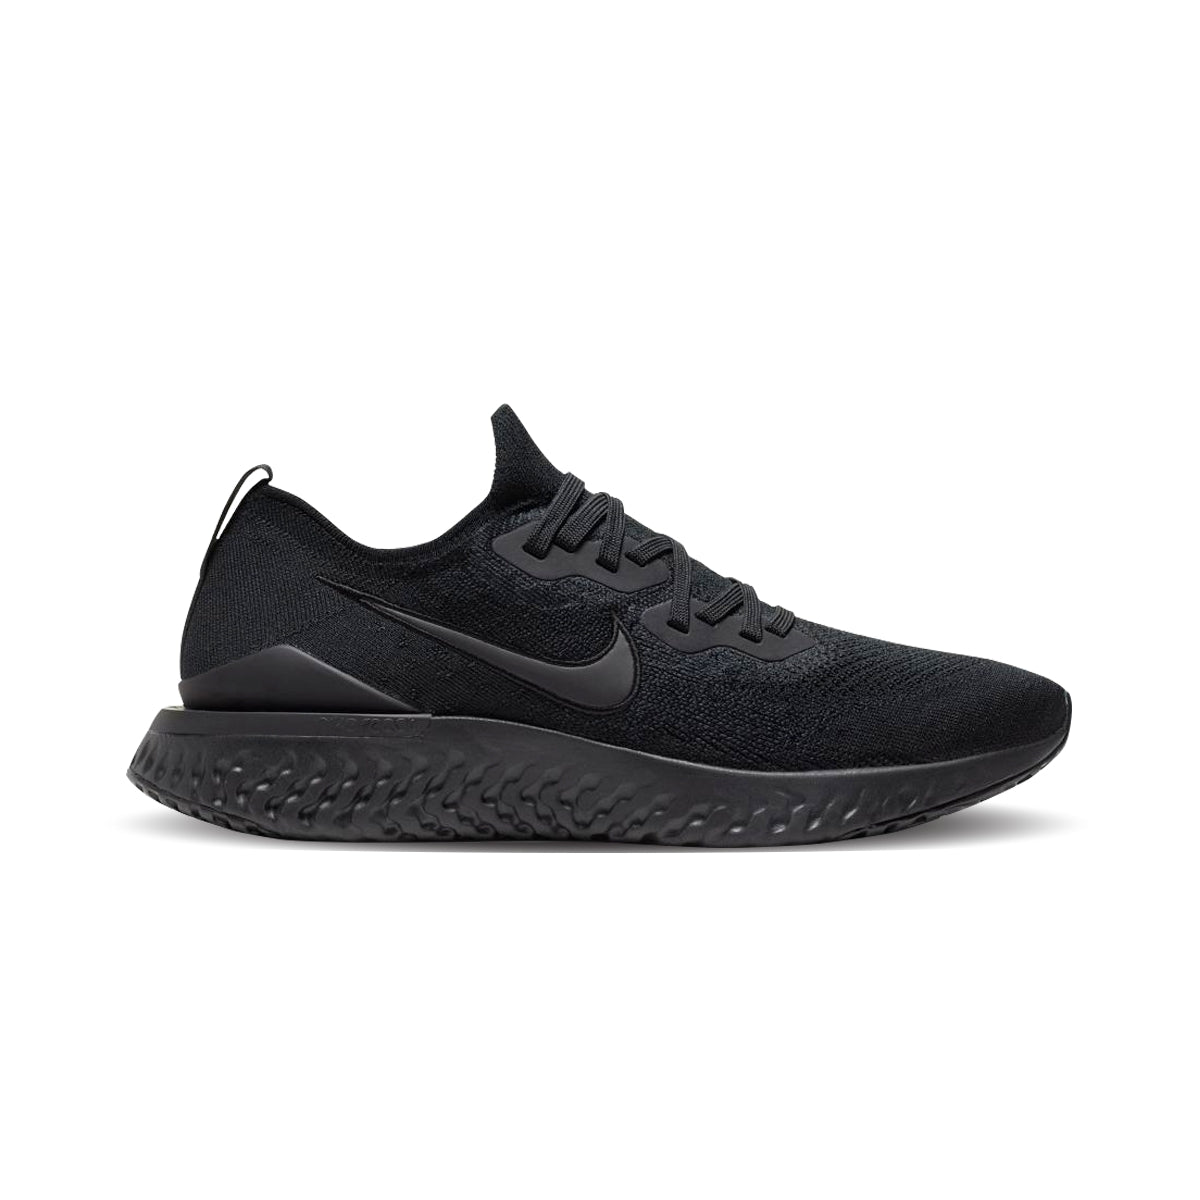 BRAND NEW MERCER AMSTERDAM W3RD BLACK SNEAKERS TRAINERS ME0274183195 WAS £250